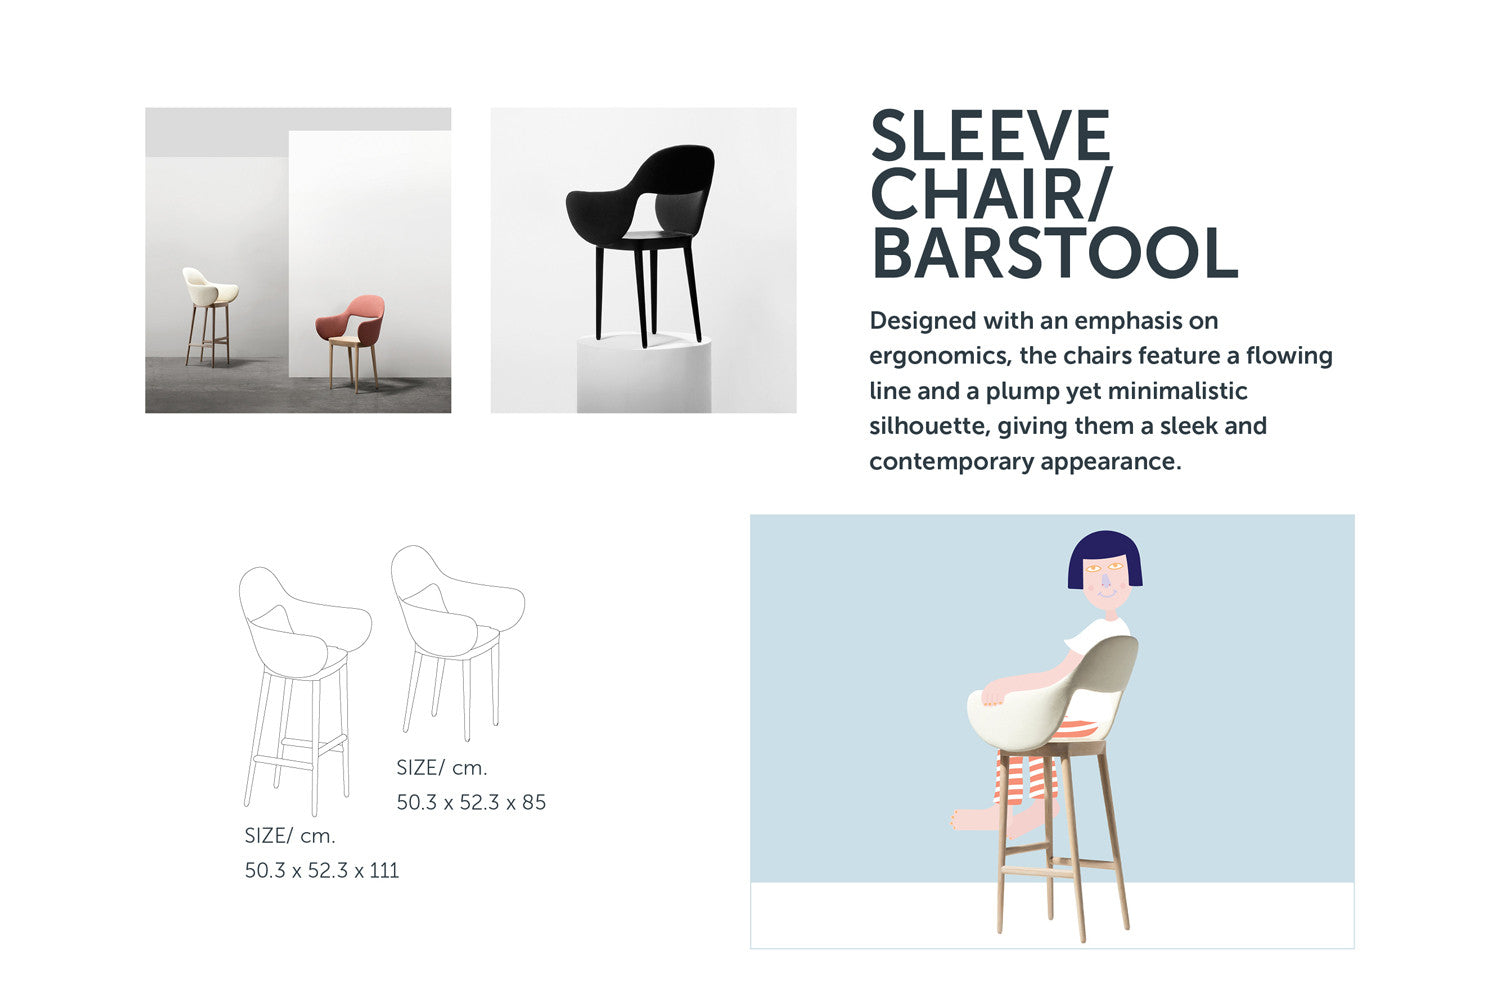 Sleeve Chair and Barstool from Stretch Your Mind furniture collection by ziinlife